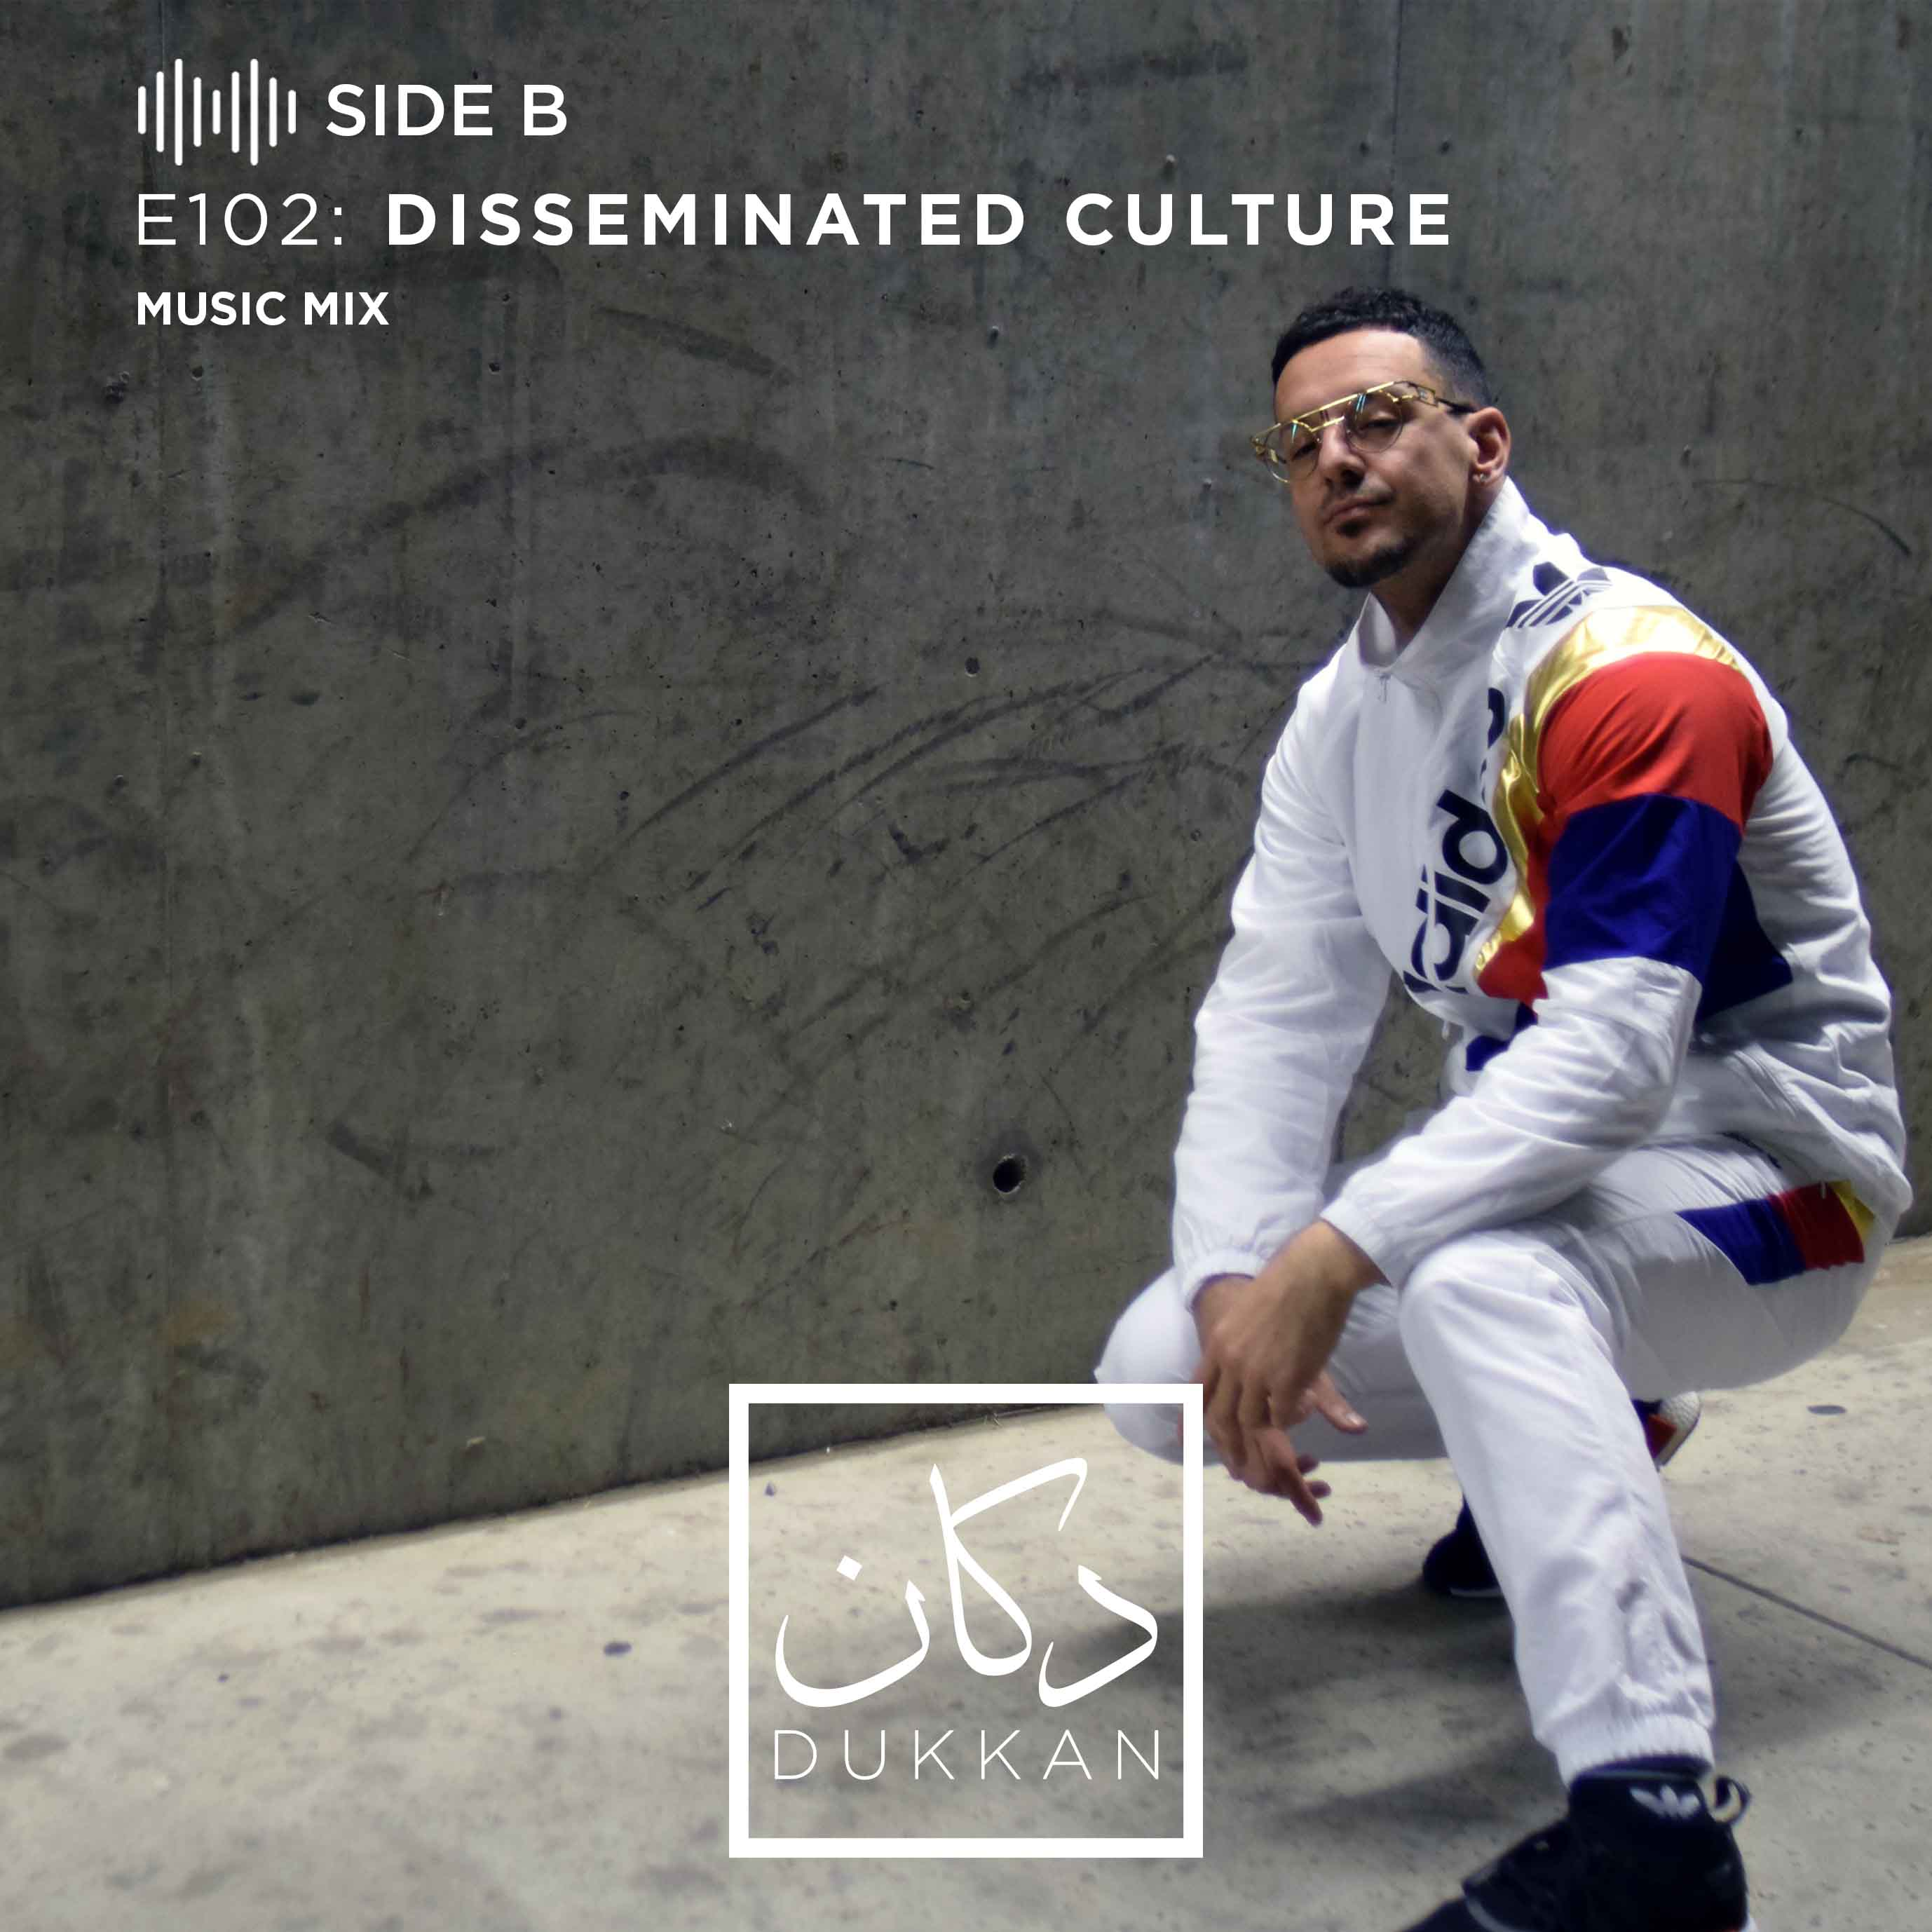 E102 - Side B: Disseminated Culture (Music Mix)